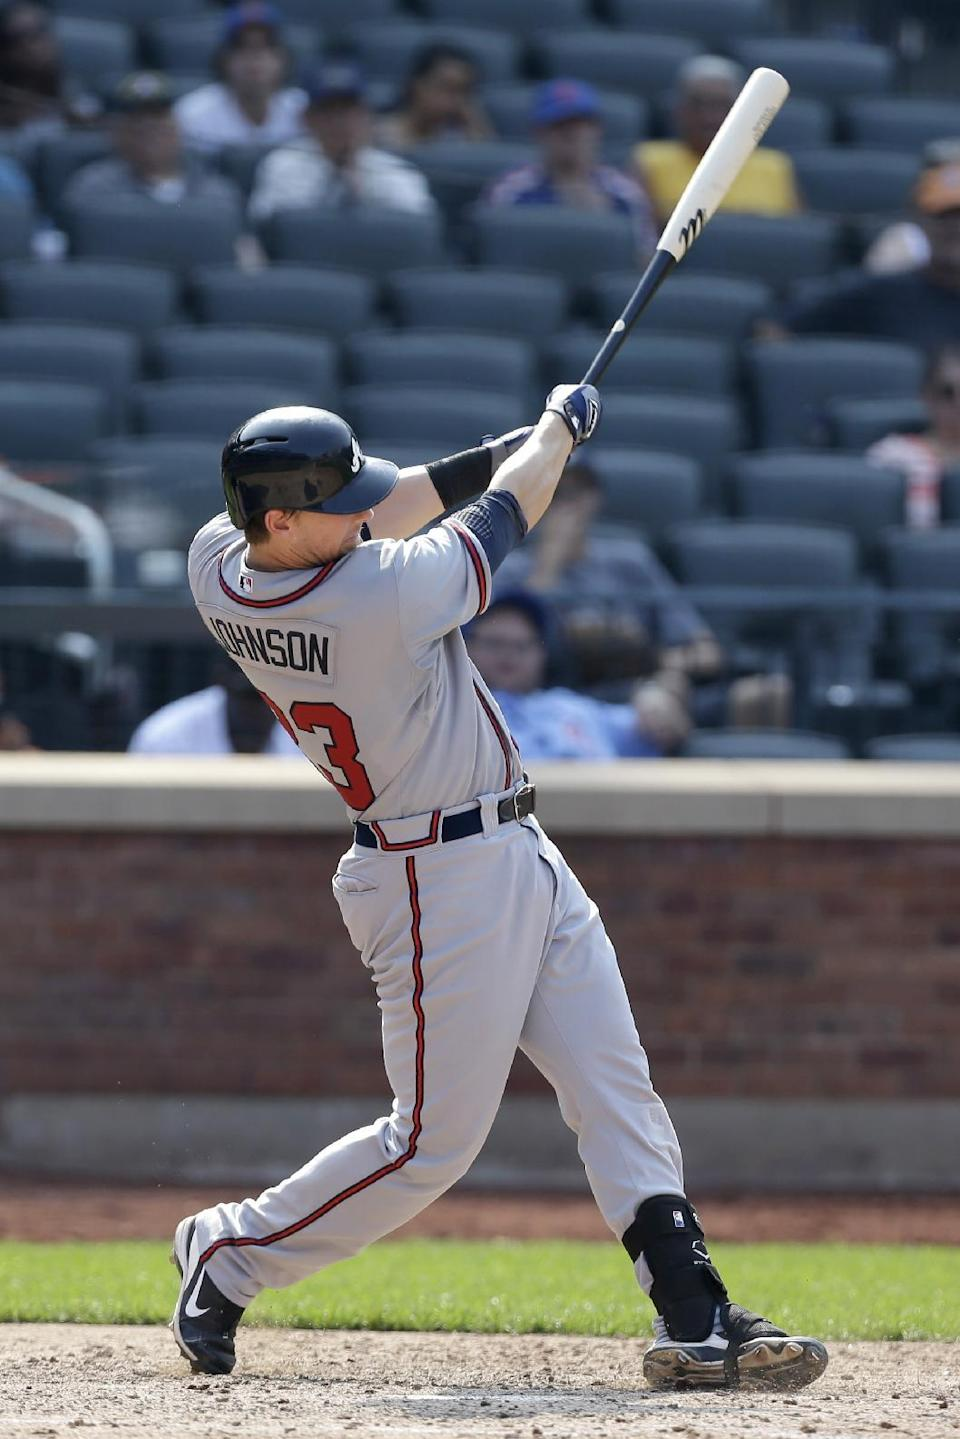 Atlanta Braves' Chris Johnson hits a three-run home run during the 10th inning of the baseball game New York Mets at Citi Field Wednesday, Aug. 21, 2013 in New York. The Braves won 4-1. (AP Photo/Seth Wenig)